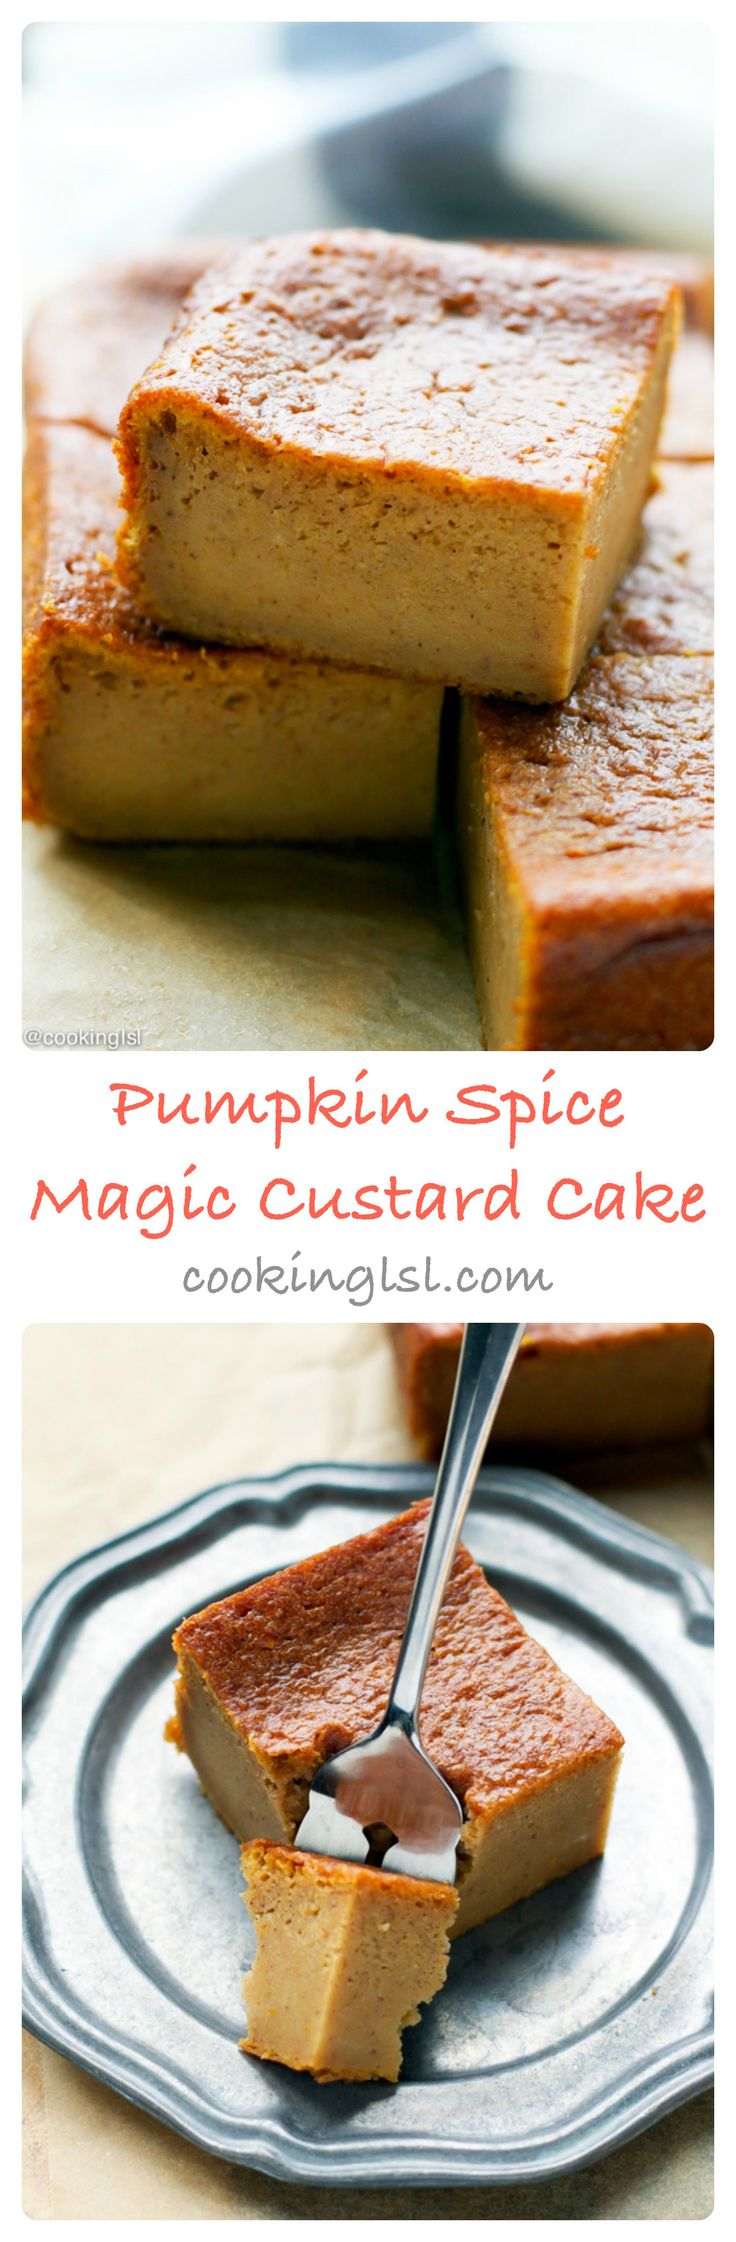 #NestleHoliday #cbias #ad pumpkin-magic-custard-cake-recipe